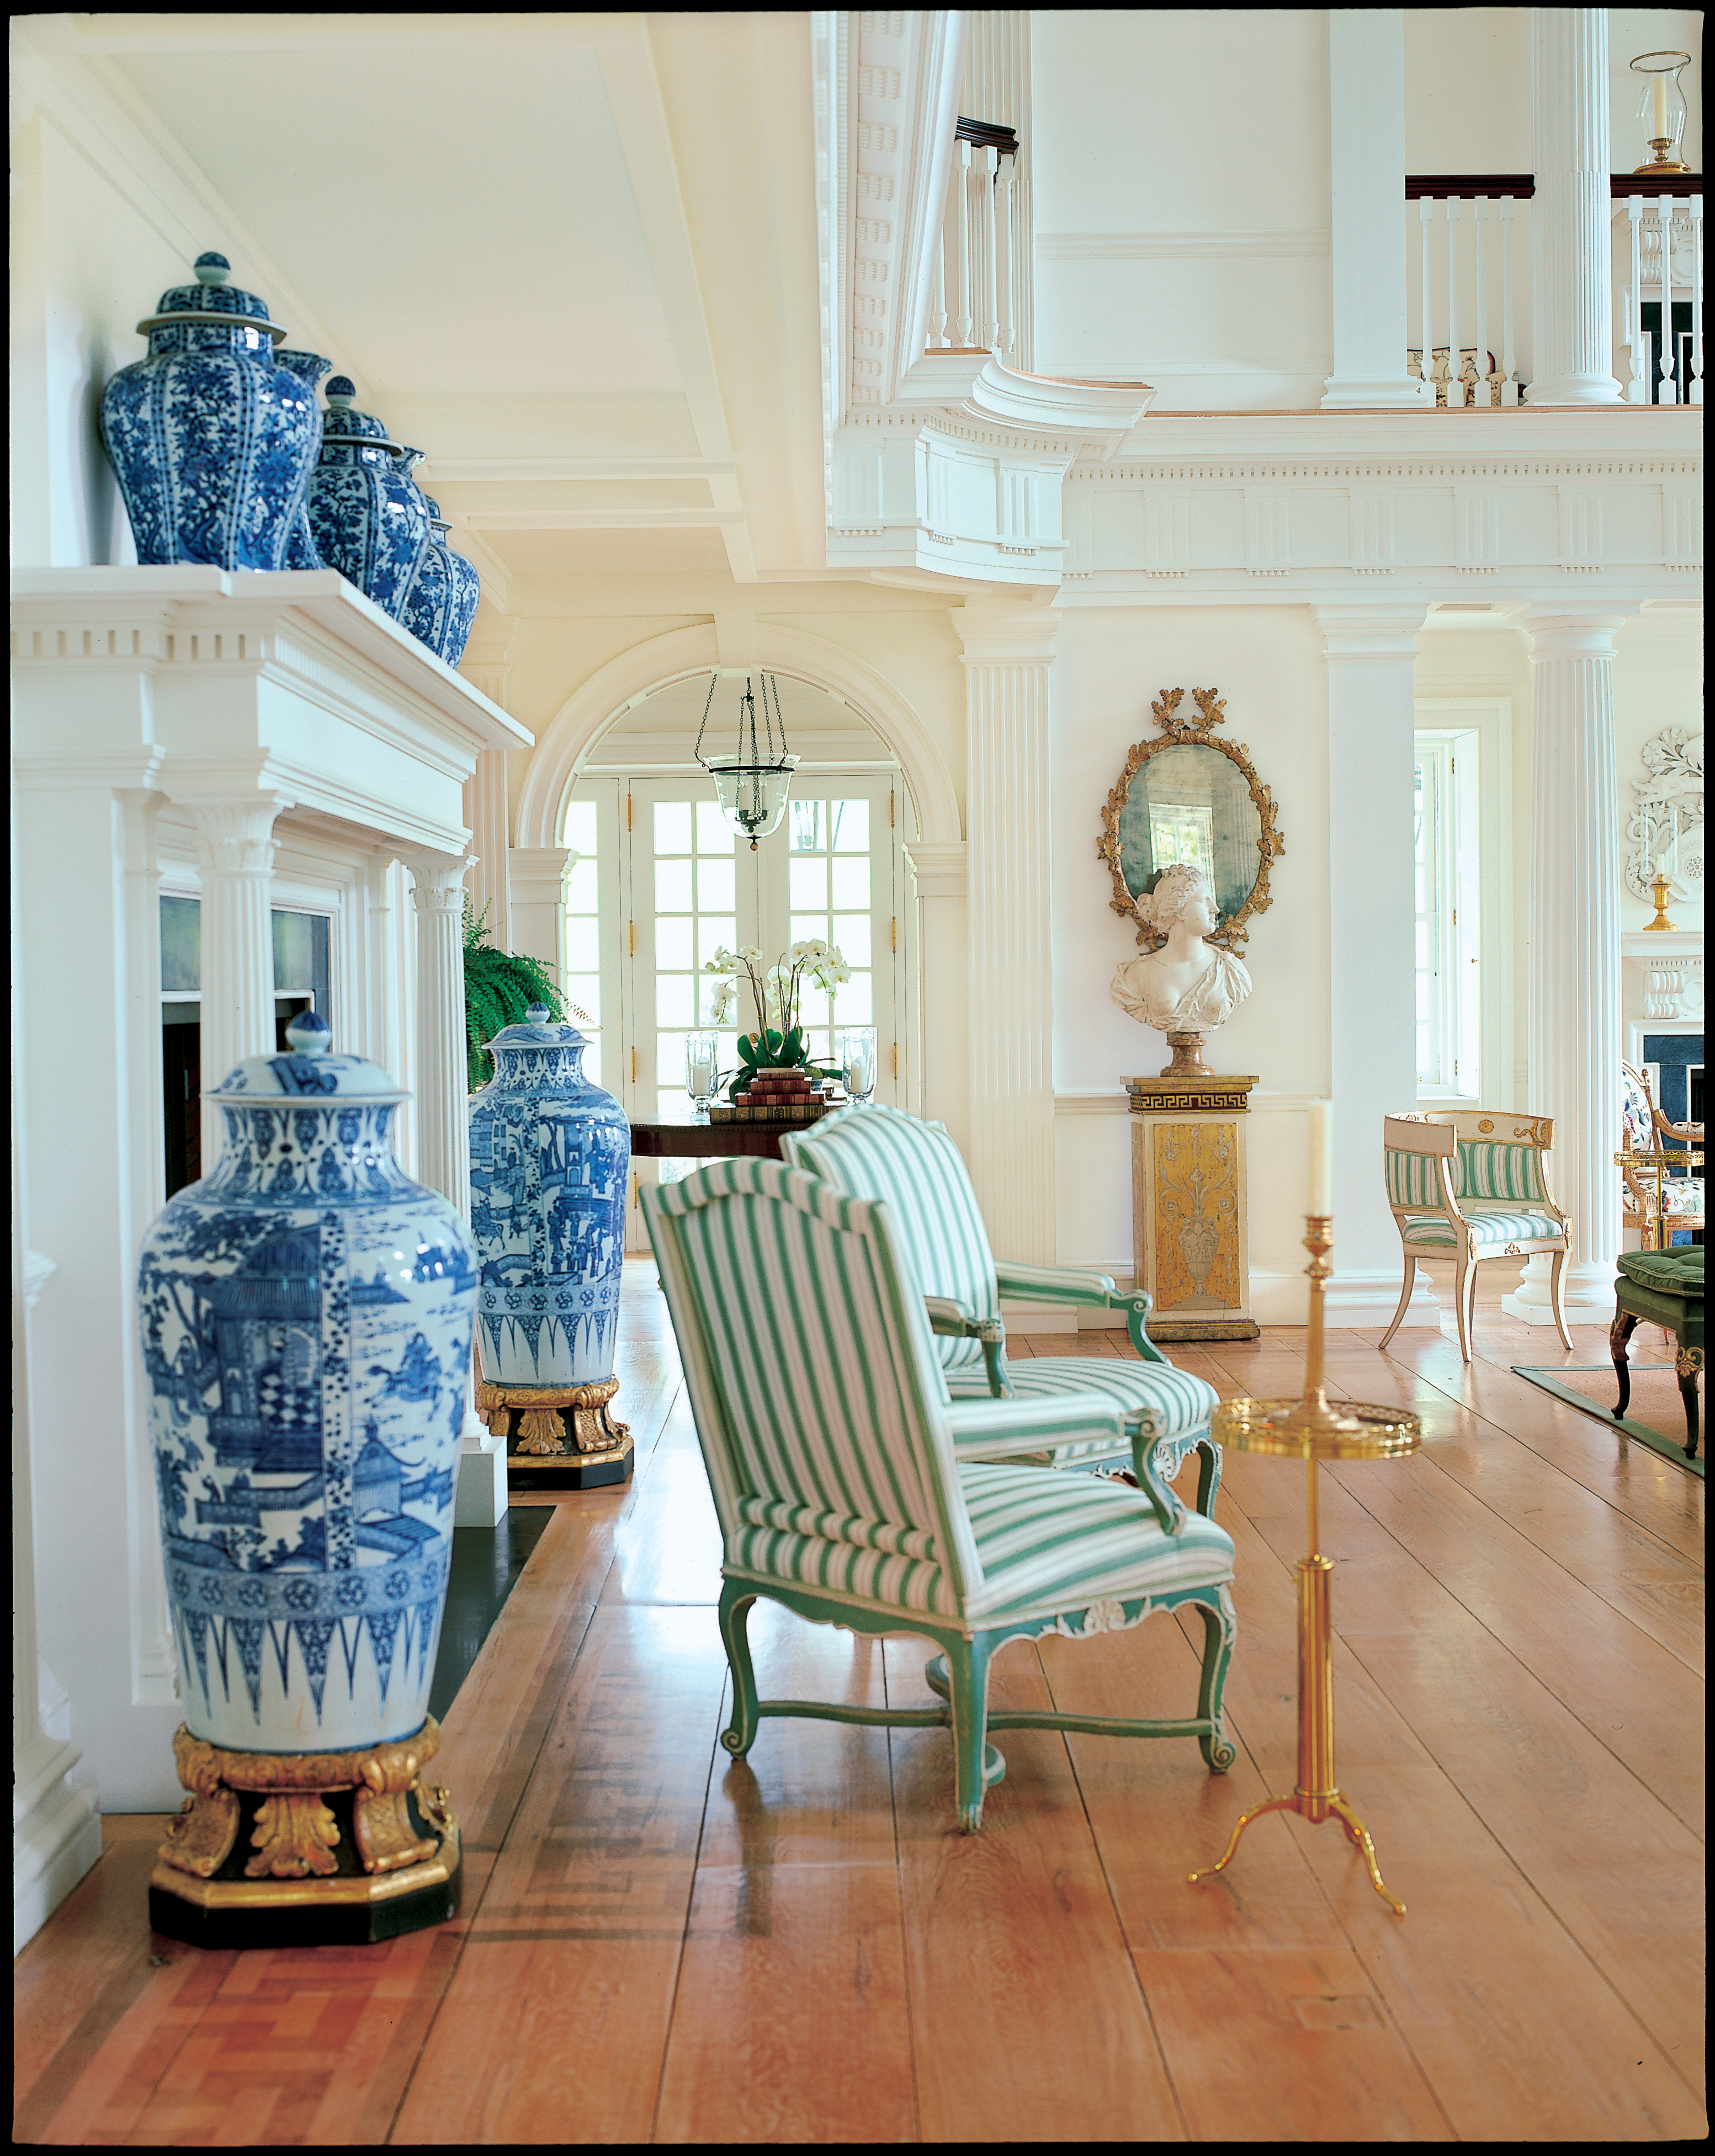 A Passion For Blue And White Carolyne Roehm 9780767921138 Amazon